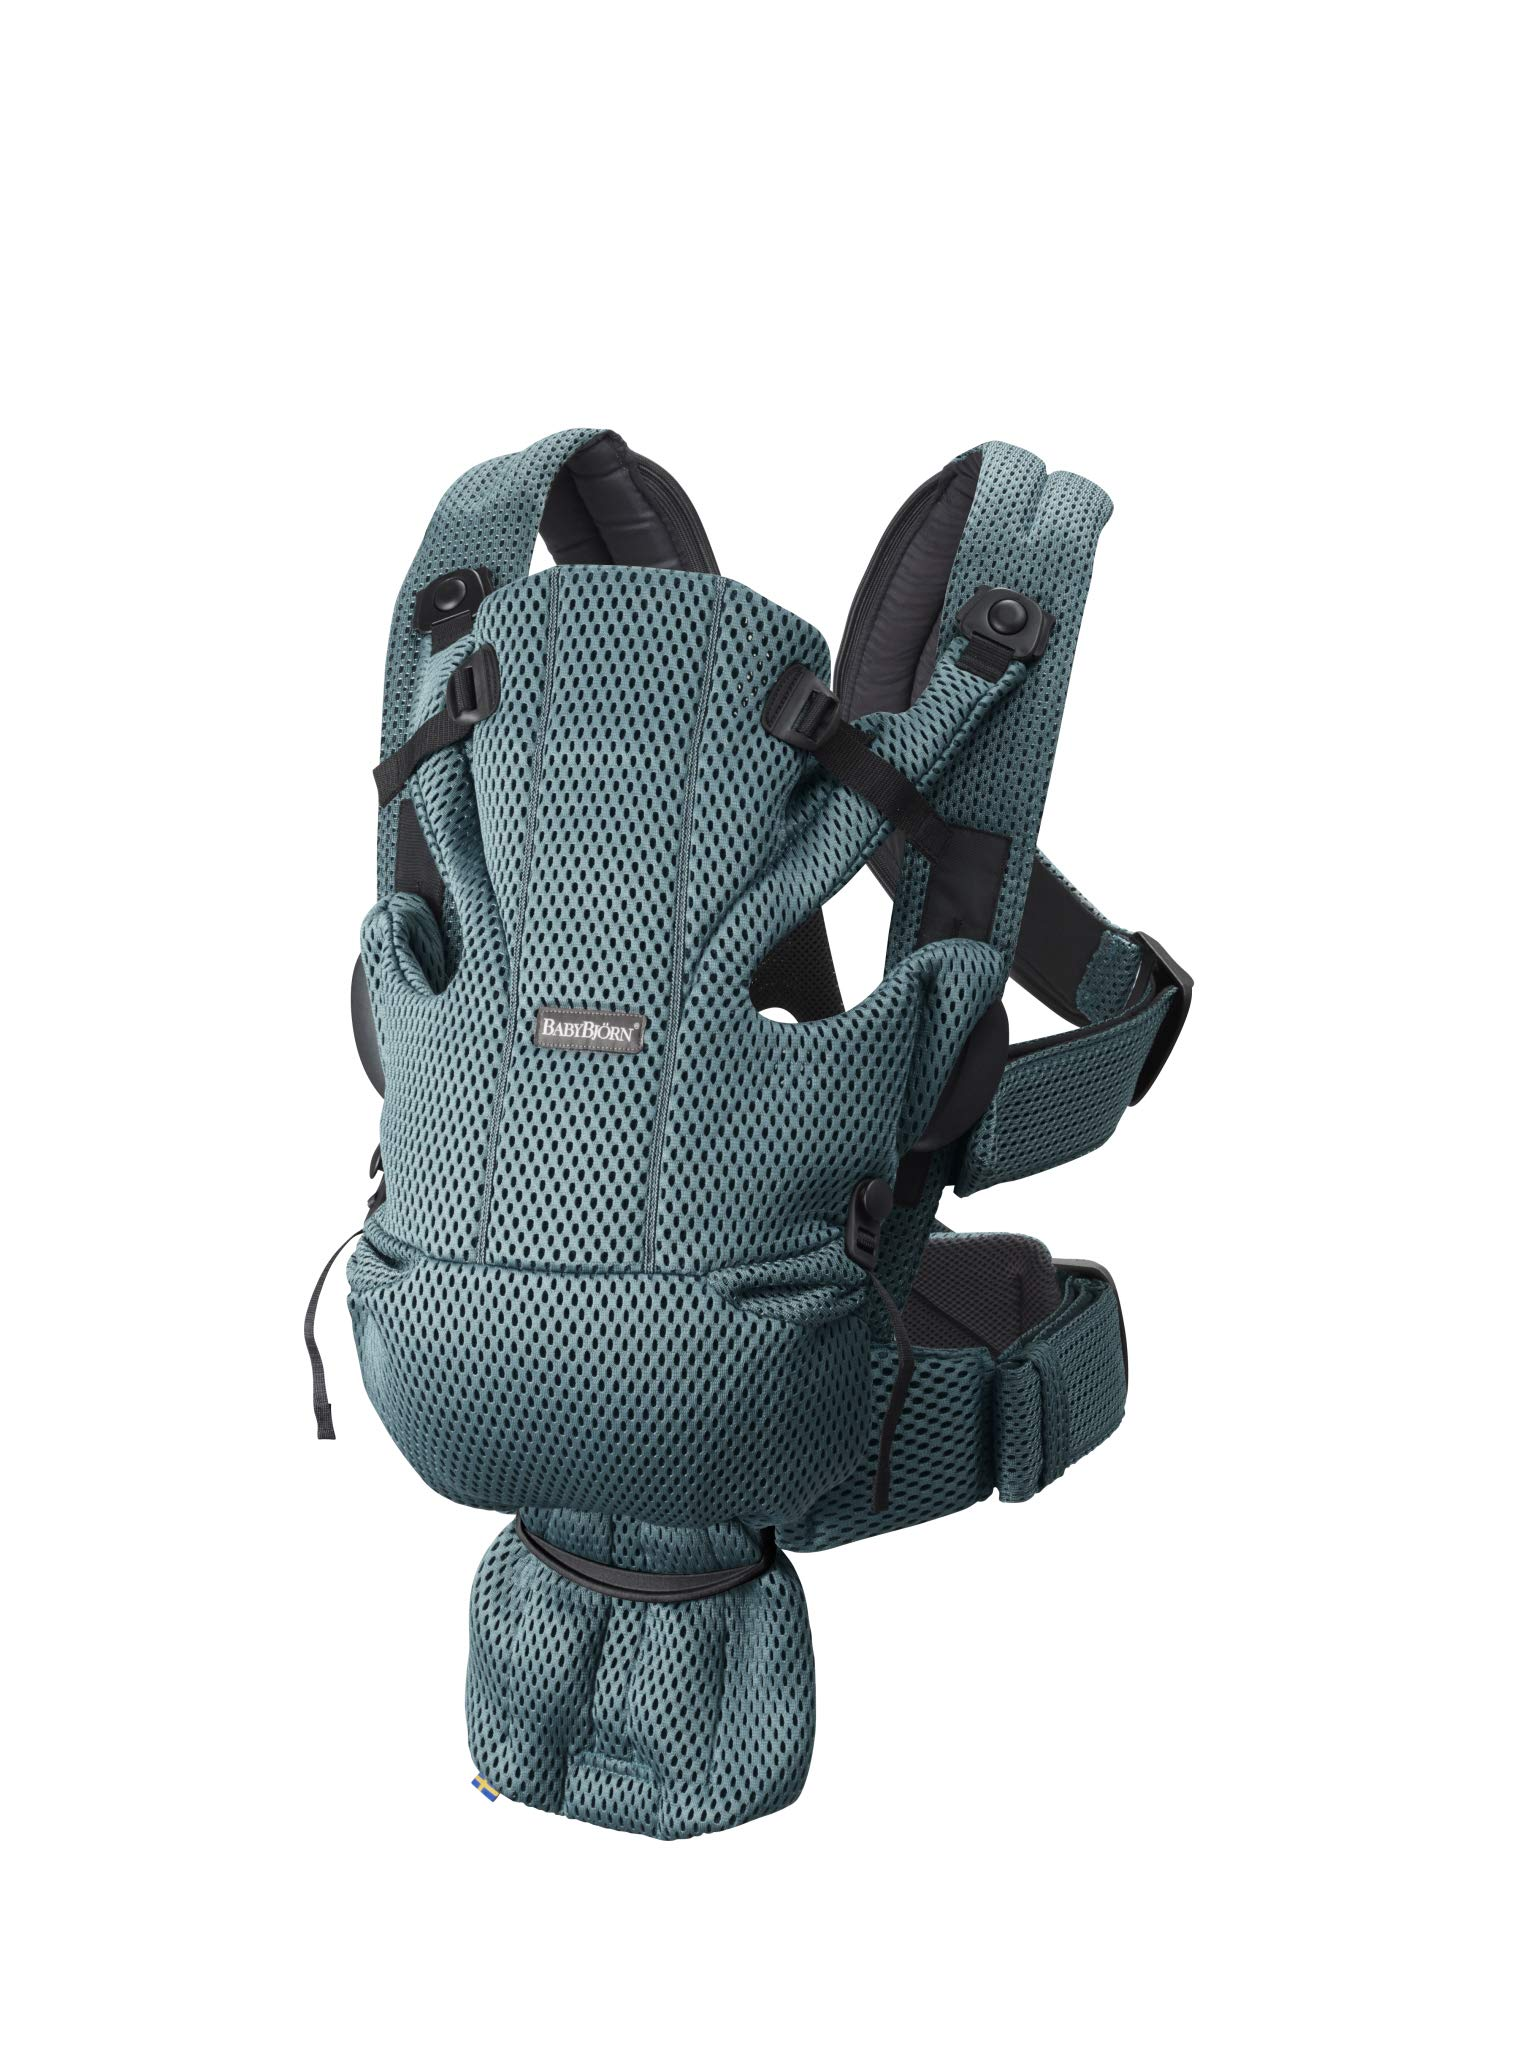 BABYBJÖRN Baby Carrier Move, 3D Mesh, Sage Green Baby Bjorn Excellent comfort with built-in back support and waist belt Easy to put on and take off Soft and airy design in cool 3D mesh 2